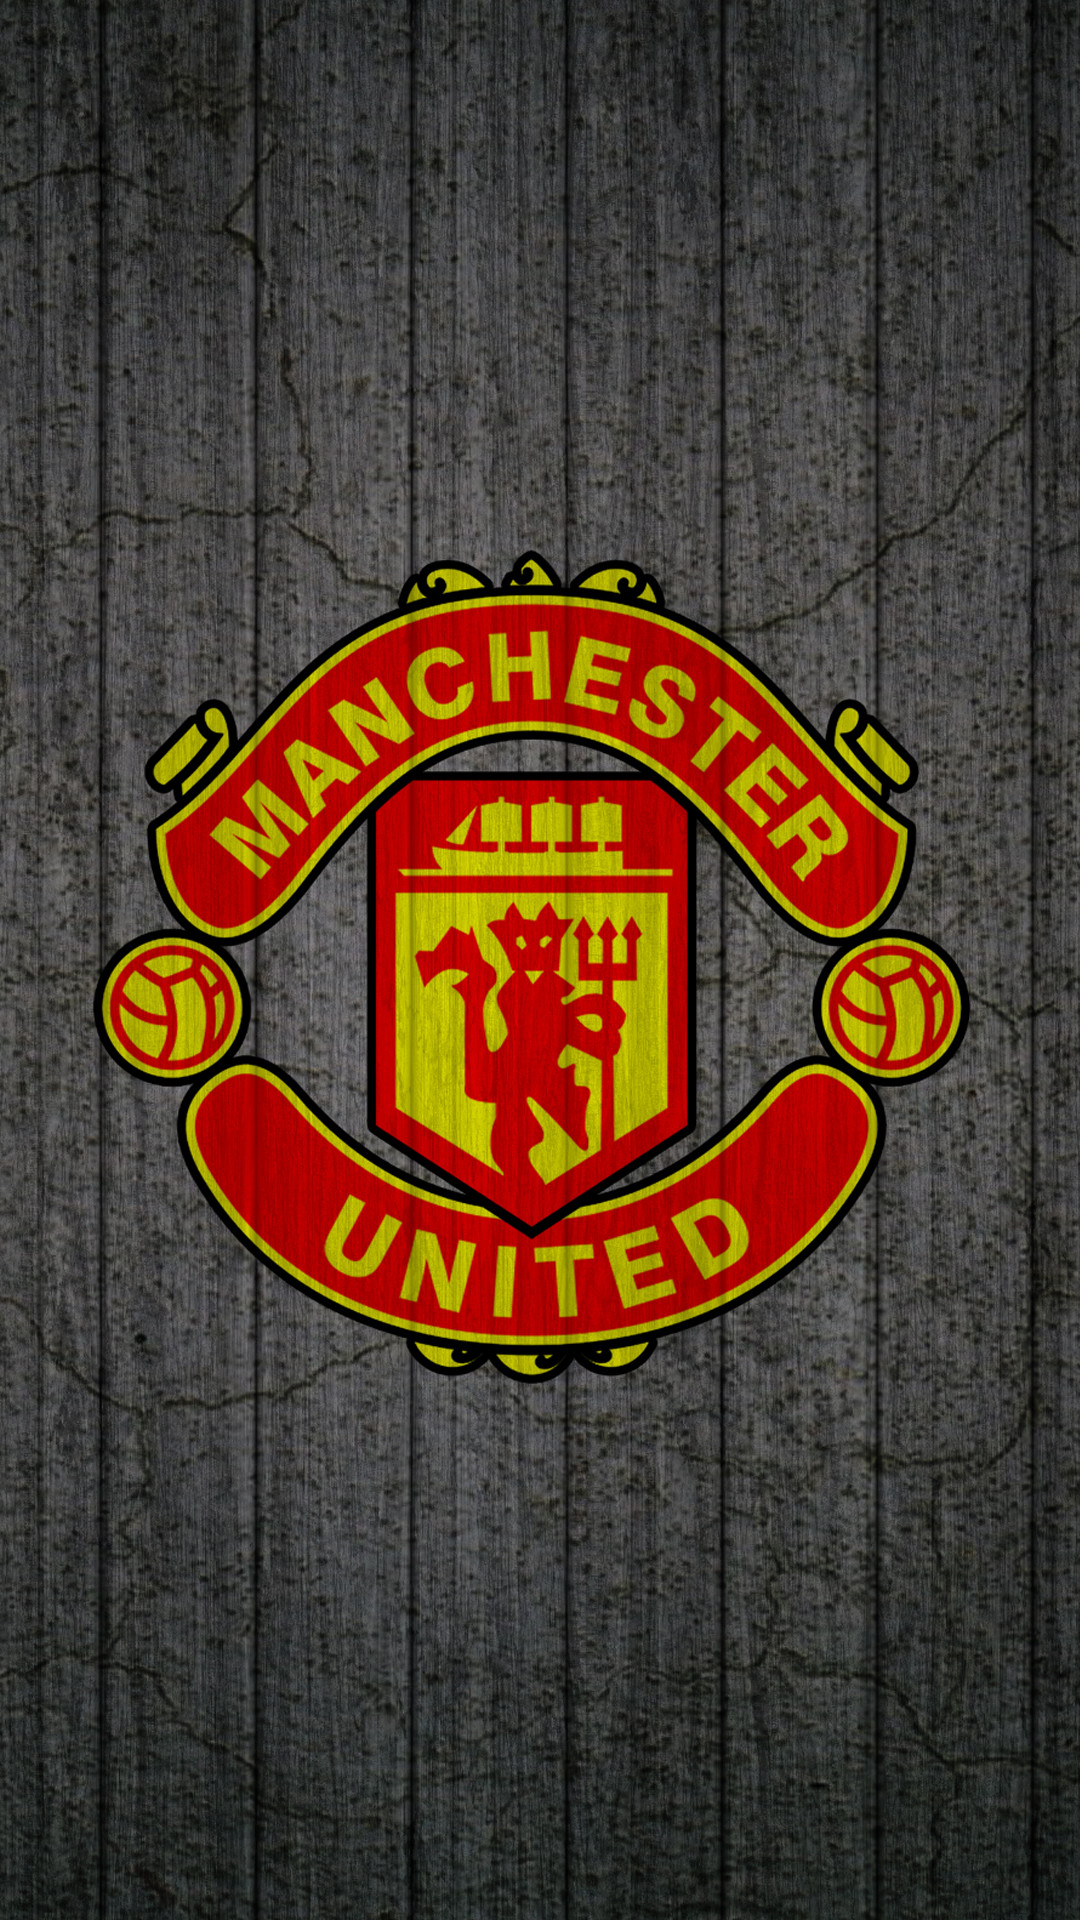 Manchester united hd wallpapers 2018 88 images - Cool man united wallpapers ...